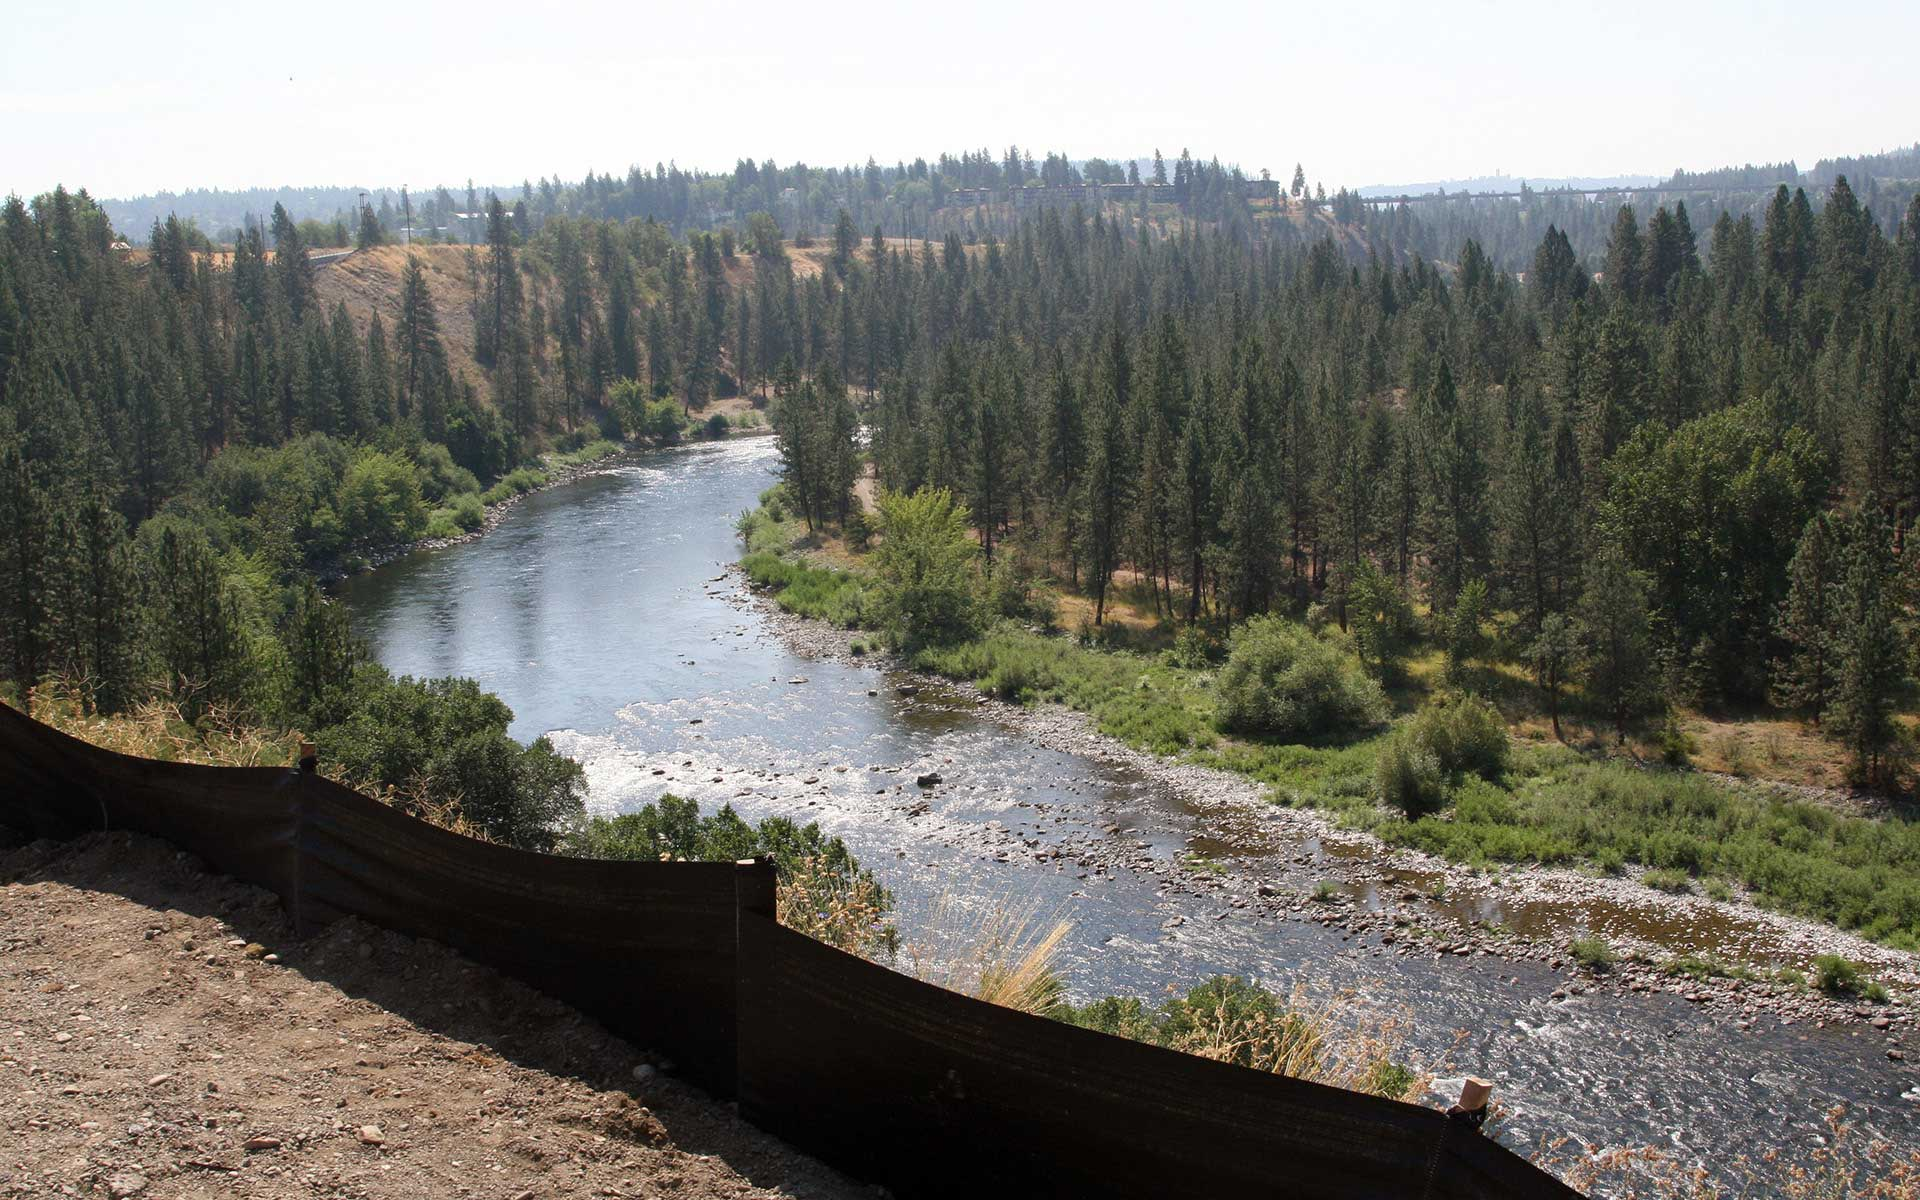 New section of centennial trail offers spectacular views city of the spokane centennial trail also connects to the north idaho centennial trail connecting the spokane and coeur dalene communities with more than 60 miles publicscrutiny Gallery